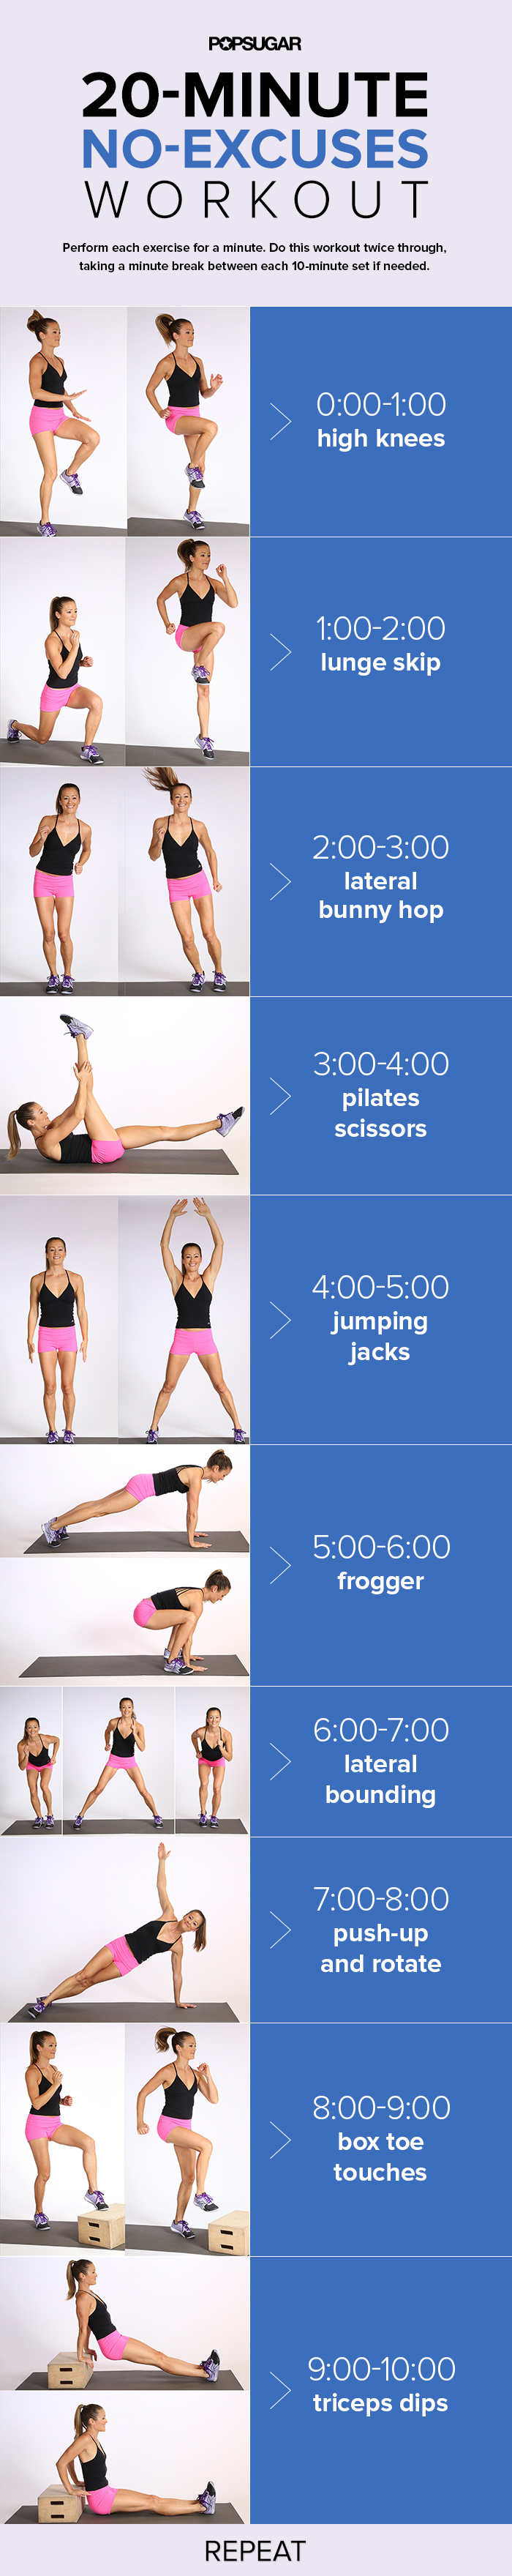 10 Minute No Floor Workout